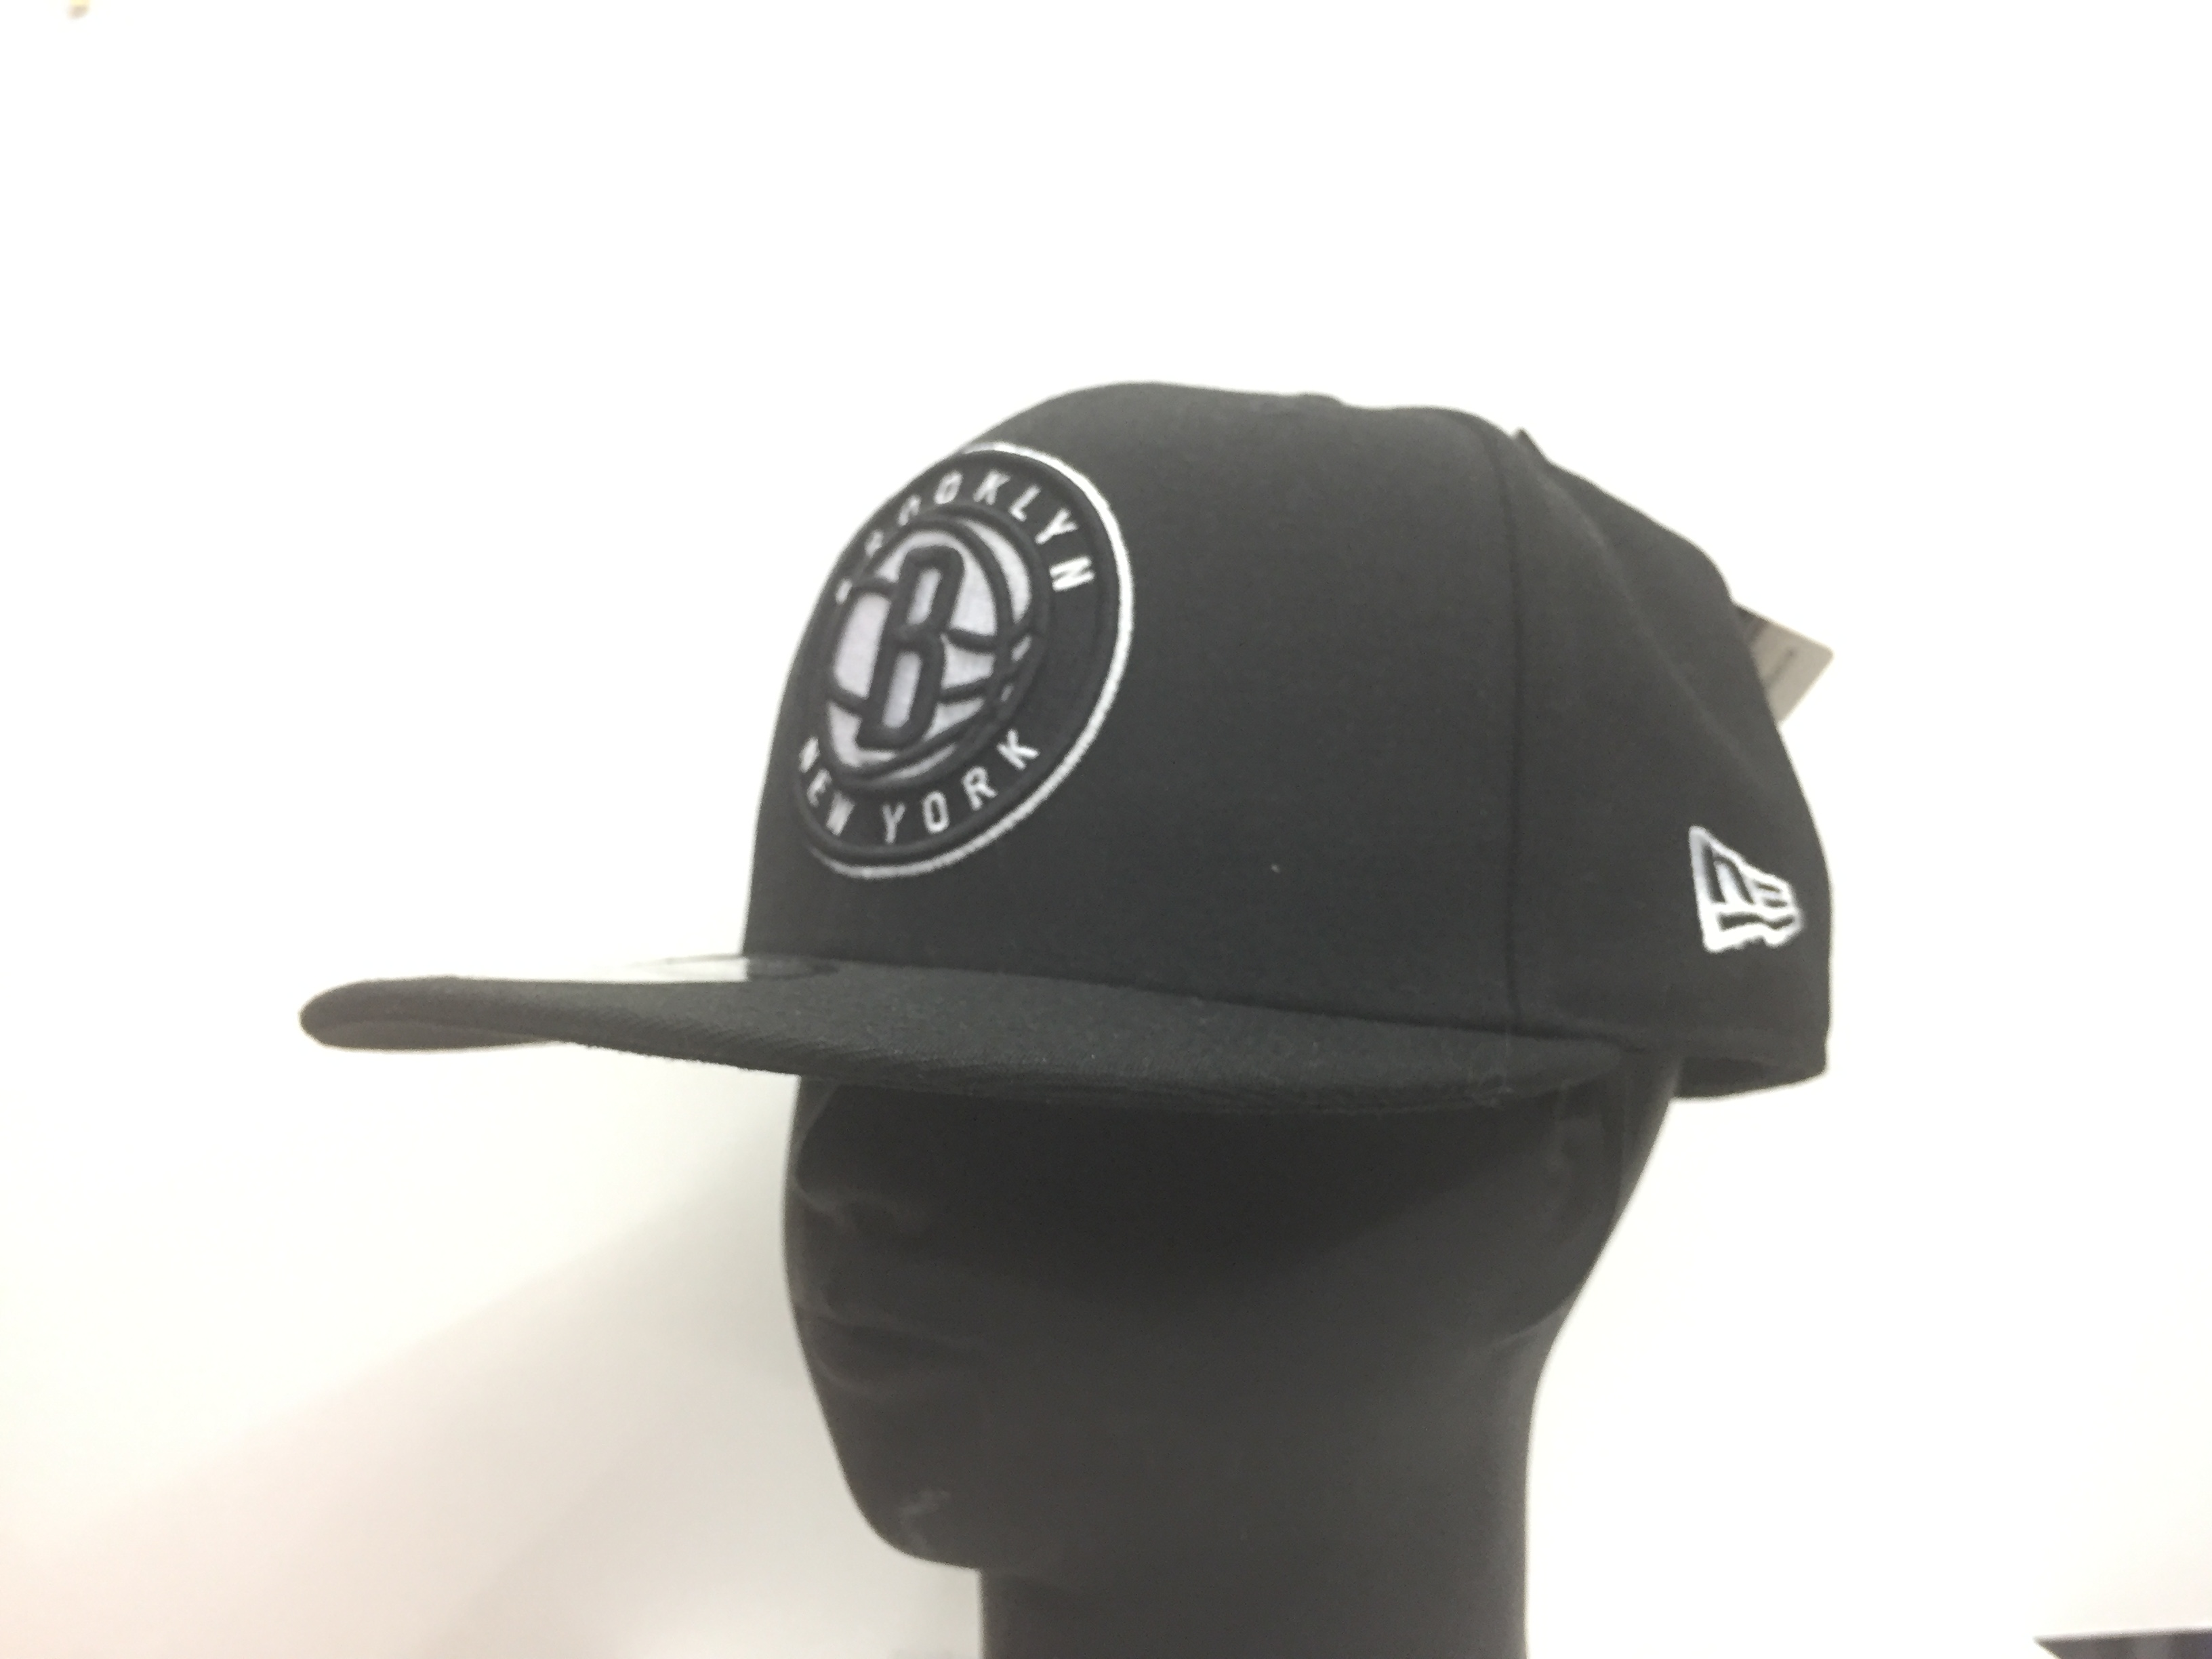 NEW ERA BROOKLYN NEGRO SNAPBACK - Gorrilandia 91ab34f9ebb